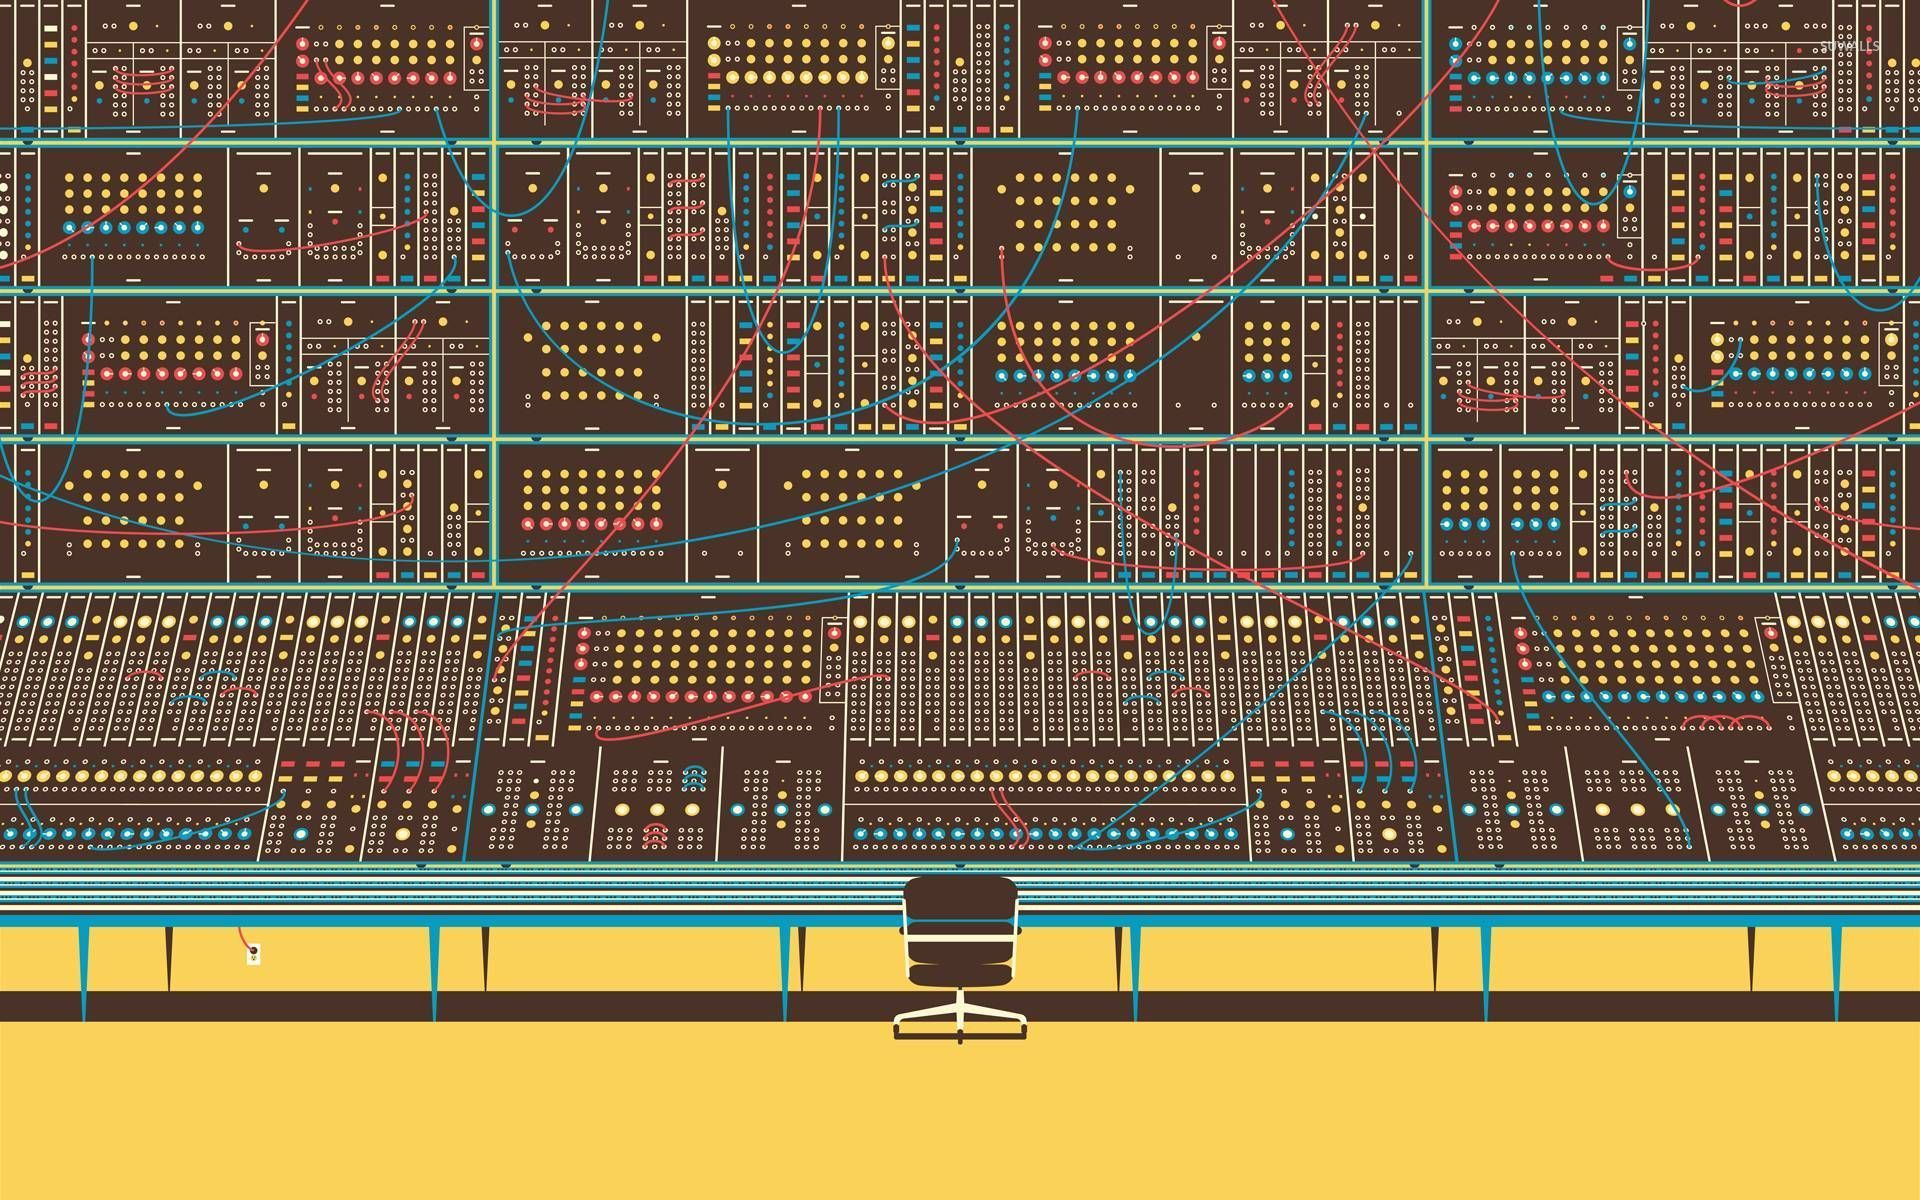 Control panel wallpaper wallpapersafari for Panel wallpaper